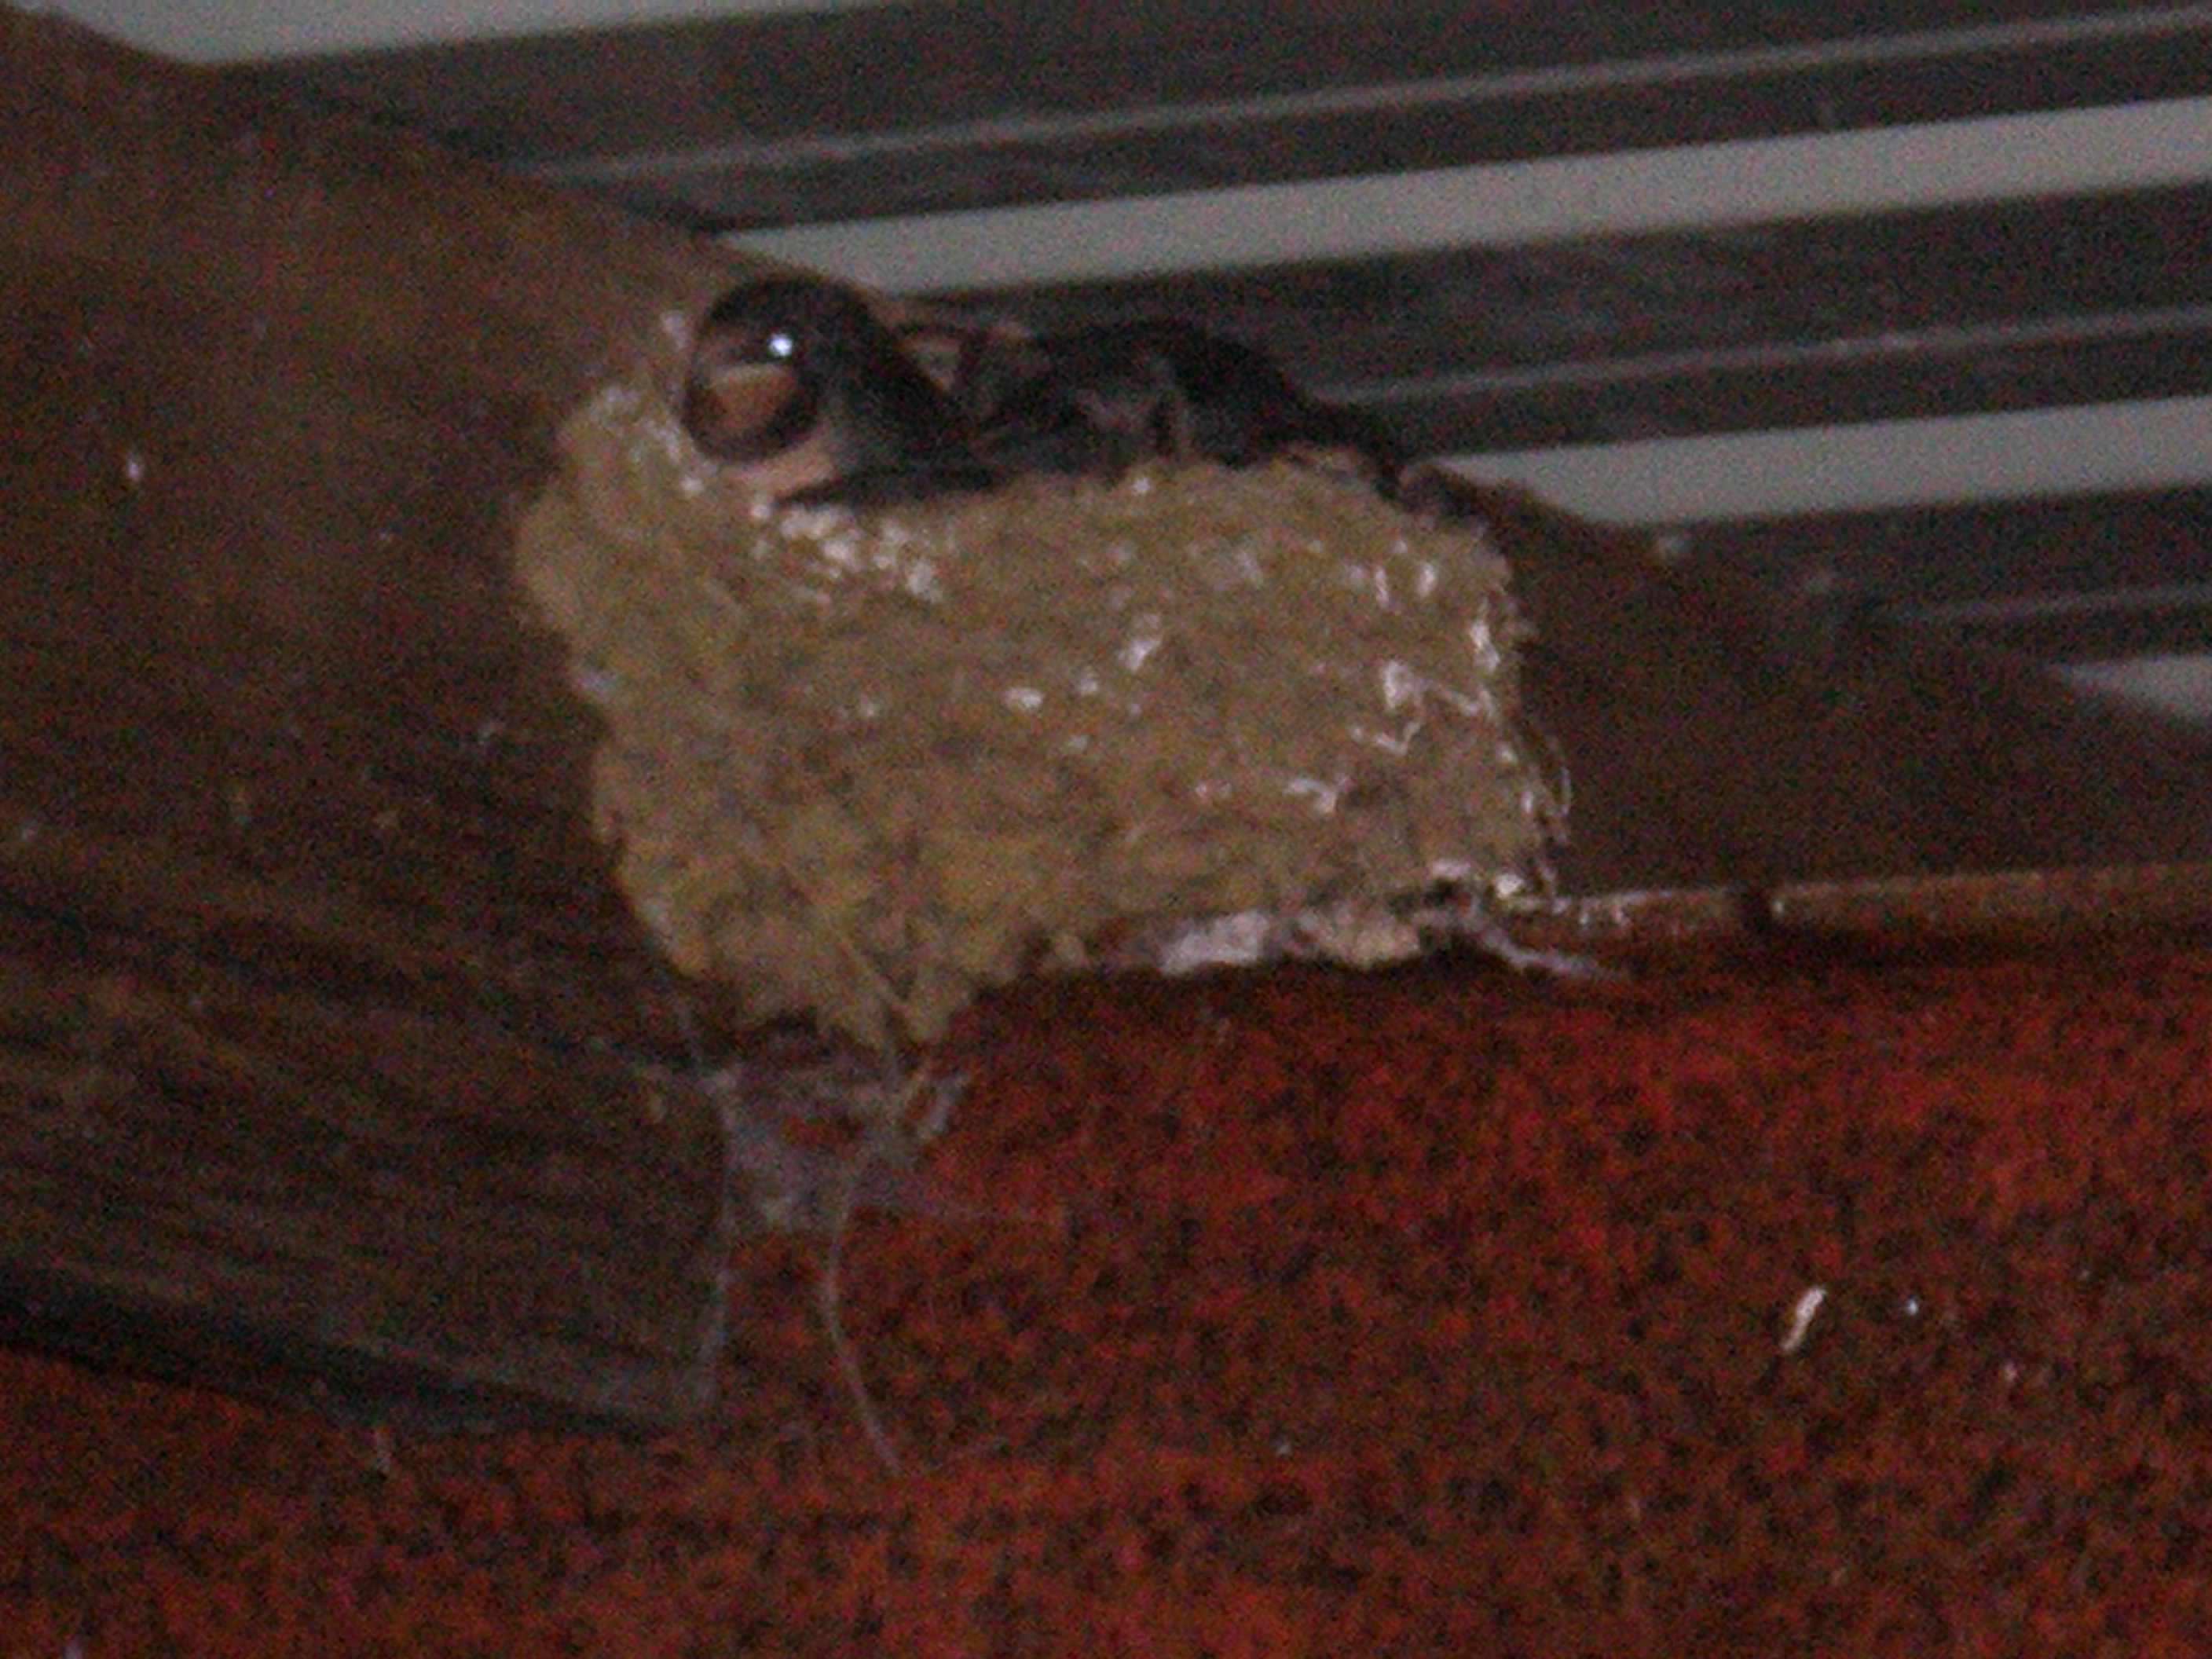 swallow babes about to fledge